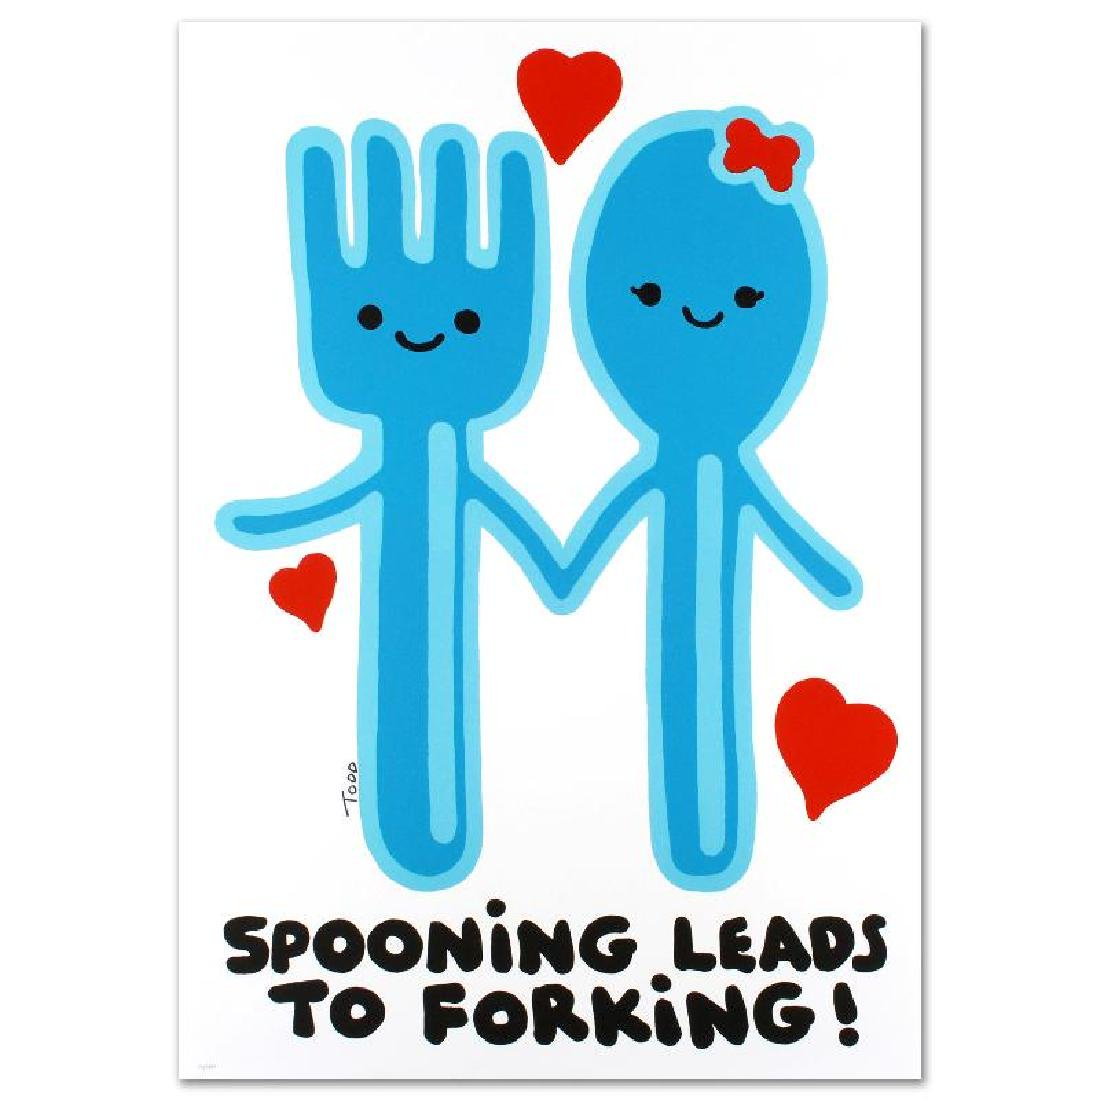 Spooning Leads to Forking Limited Edition Lithograph